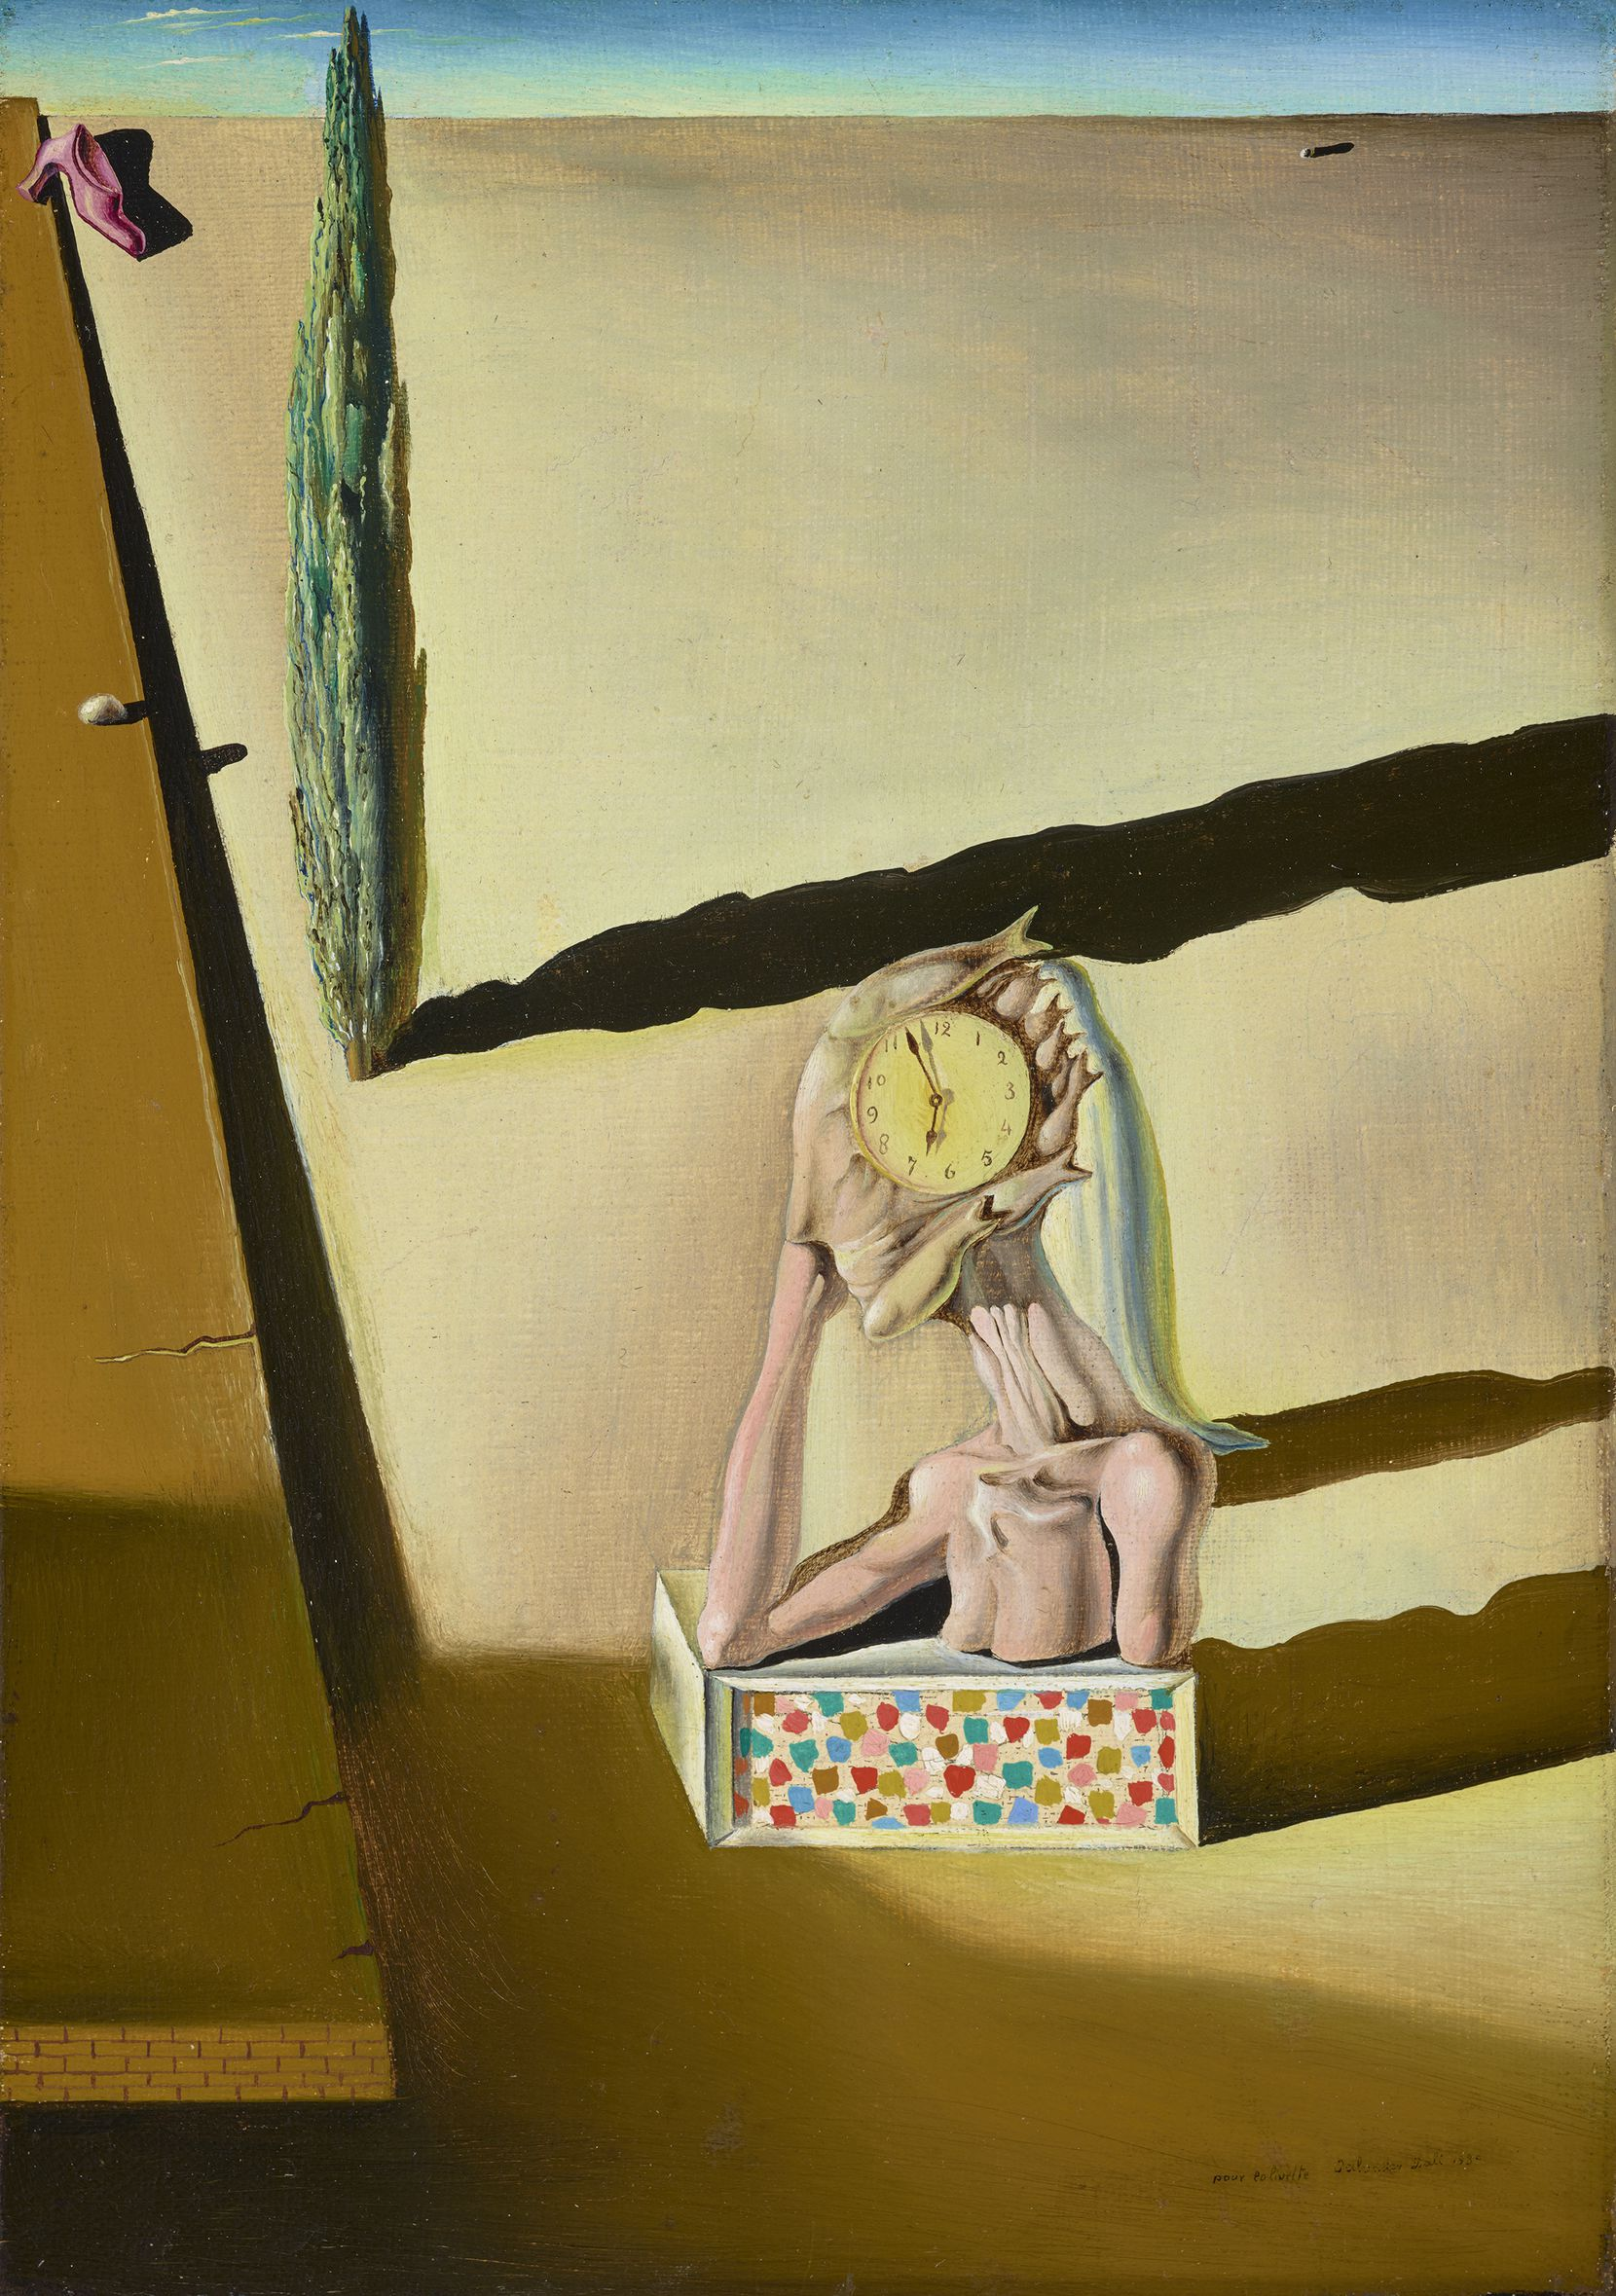 """Salvador Dali, (Spanish, 1904 1989), """"The Fish Man (L'homme poisson), 1930."""" Meadows Museum, SMU, Dallas. Museum purchase with funds from The Meadows Foundation, Holly Bock, Doug Deason, Mrs. Eugene McDermott, Linda P. and William A. Custard, and Gwen and Richard Irwin; MM.2014.11. Photo by Brad Flowers."""